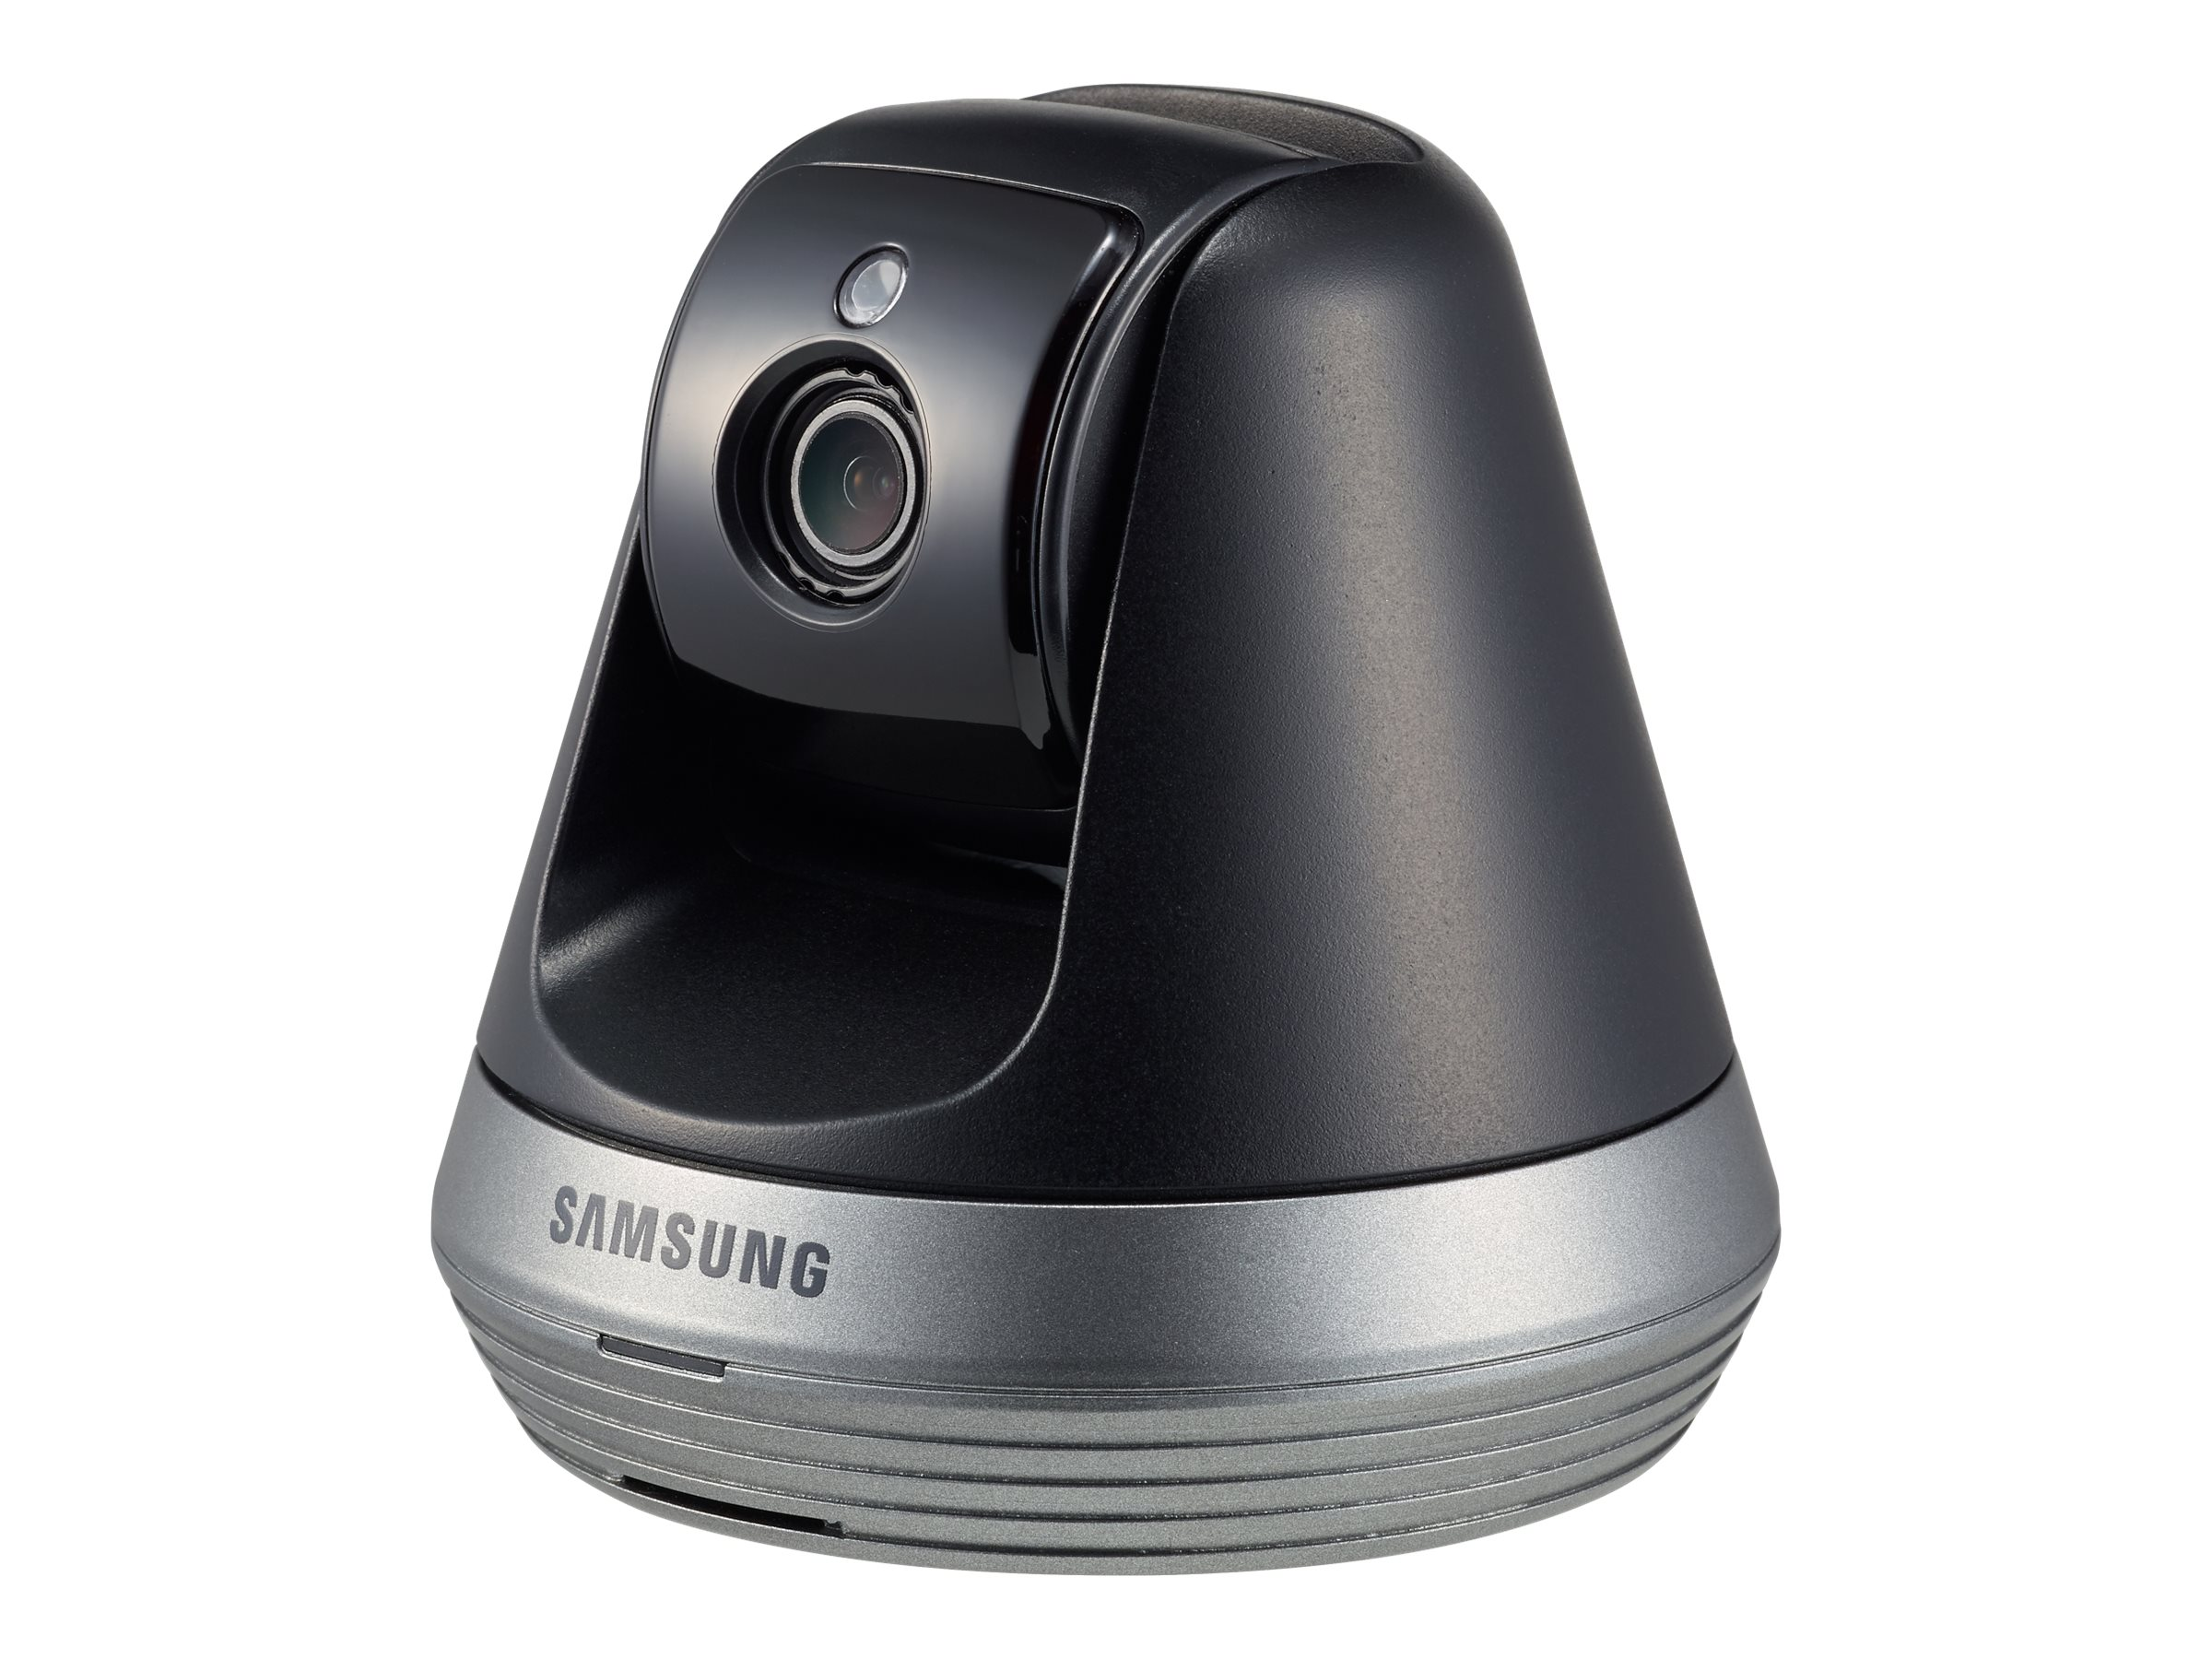 Samsung SmartCam Pan Tilt Full HD 1080p Wi-Fi IP Camera